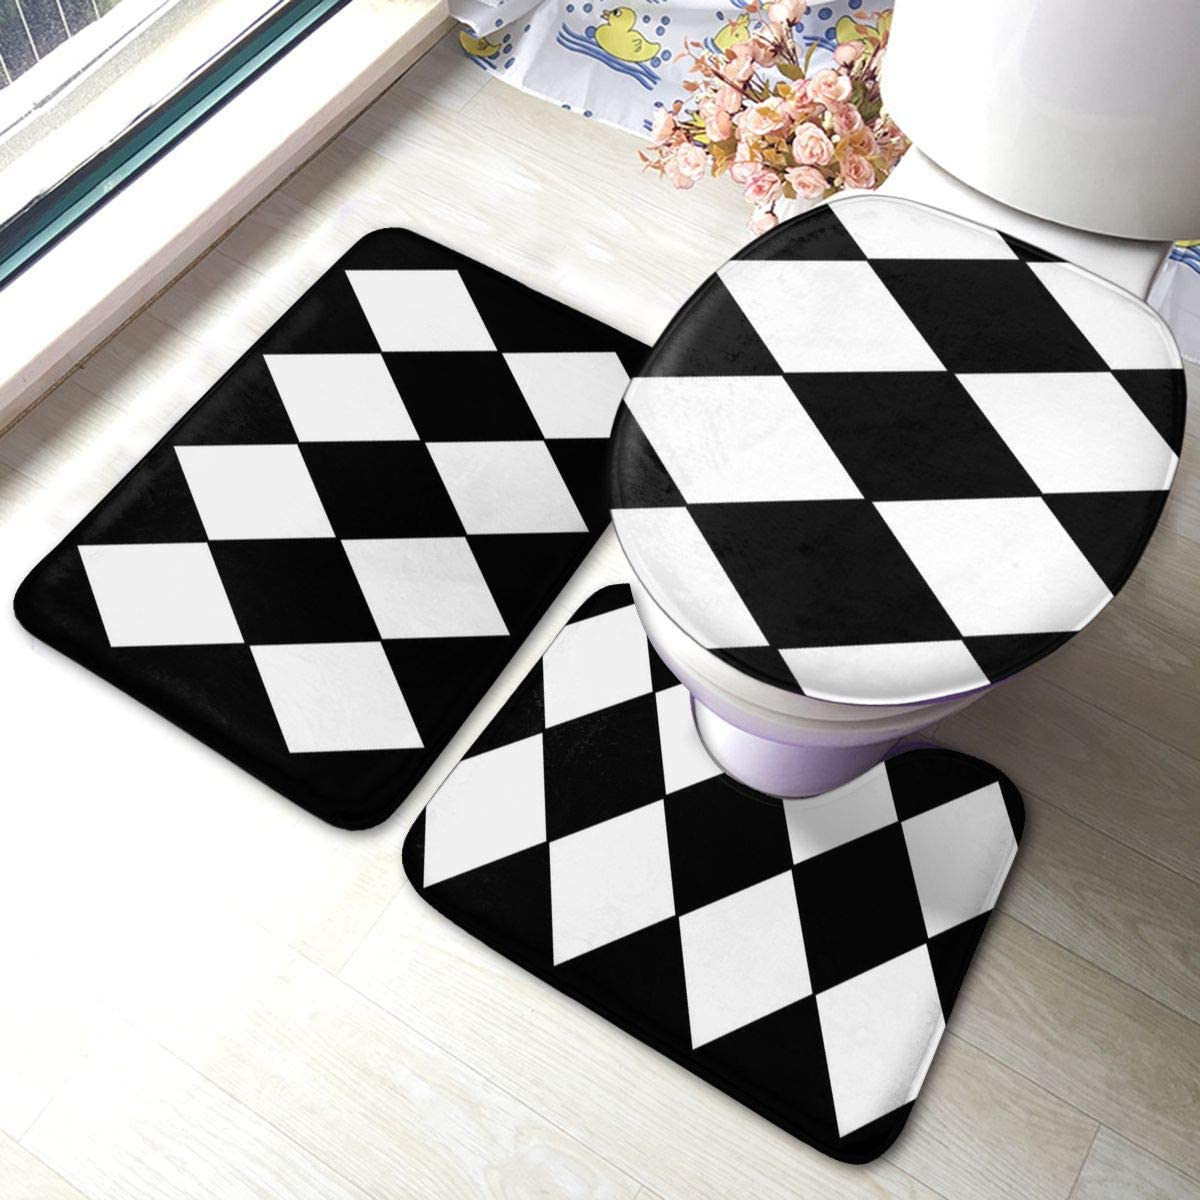 DING Large Black and White Harlequin Diamond Soft Comfort Flannel Bathroom Mats 3pcs Set Non-Slip Rugs Absorbent Toilet Seat Cover Bath Mat Lid Cover